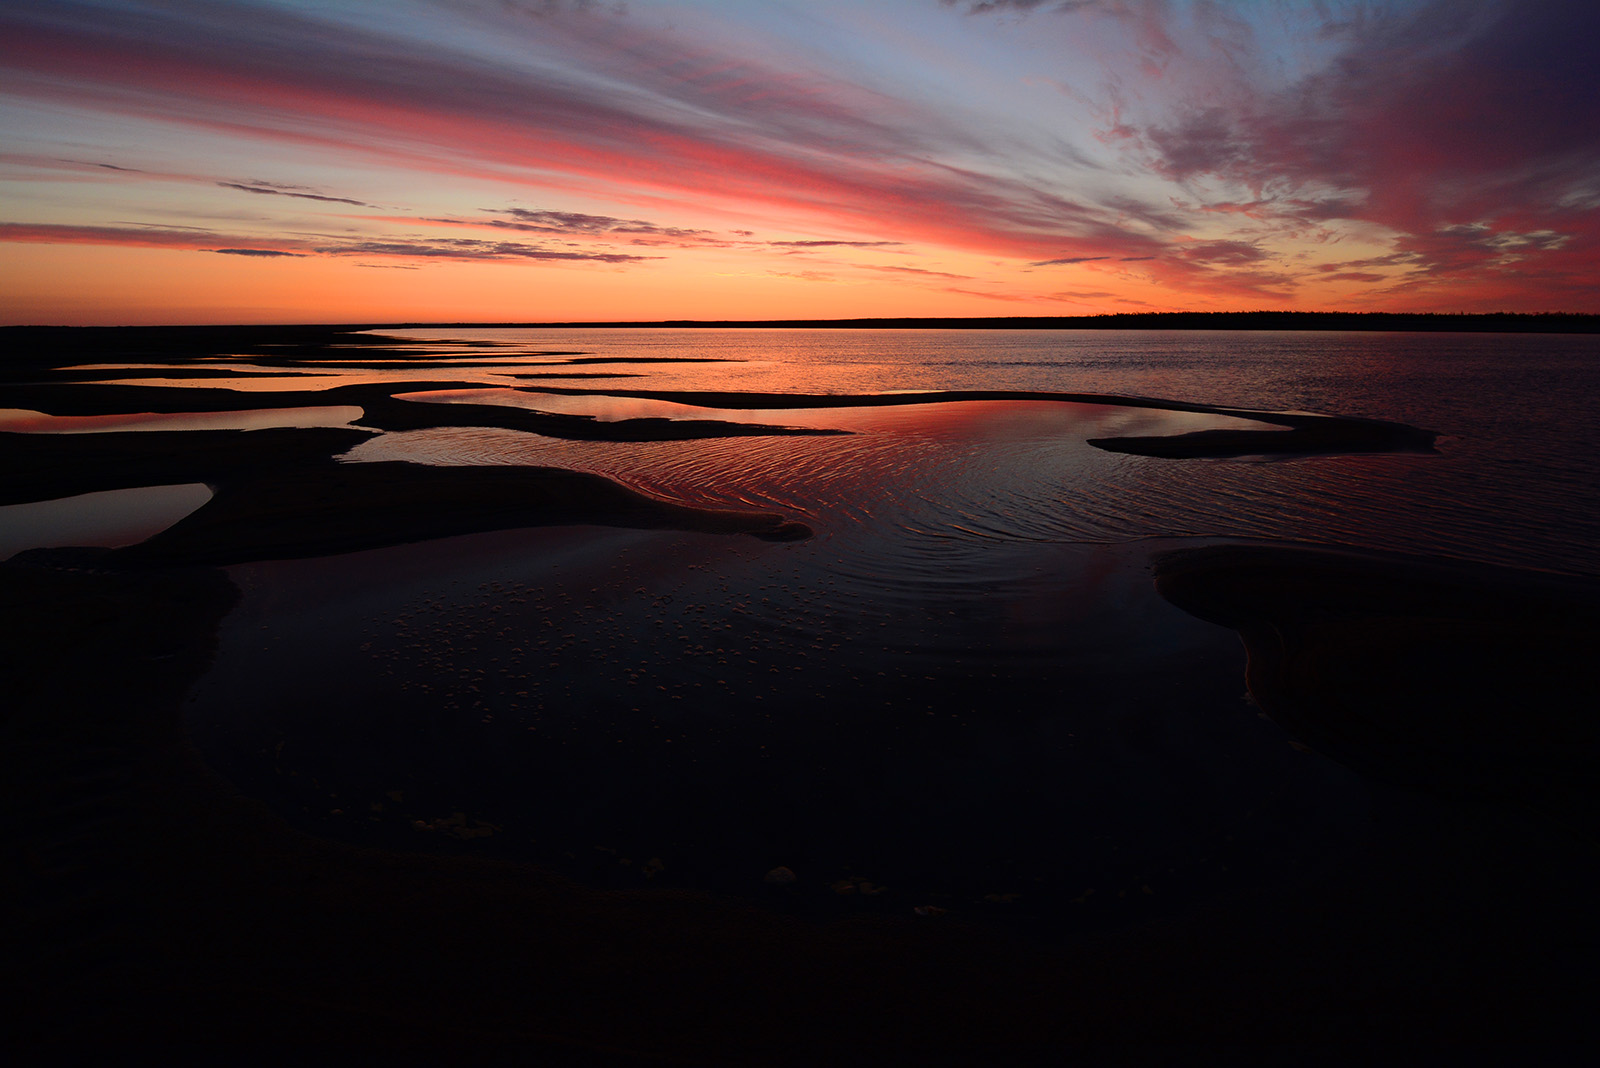 A colorful sunset over the Colville River, on the North Slope of Alaska